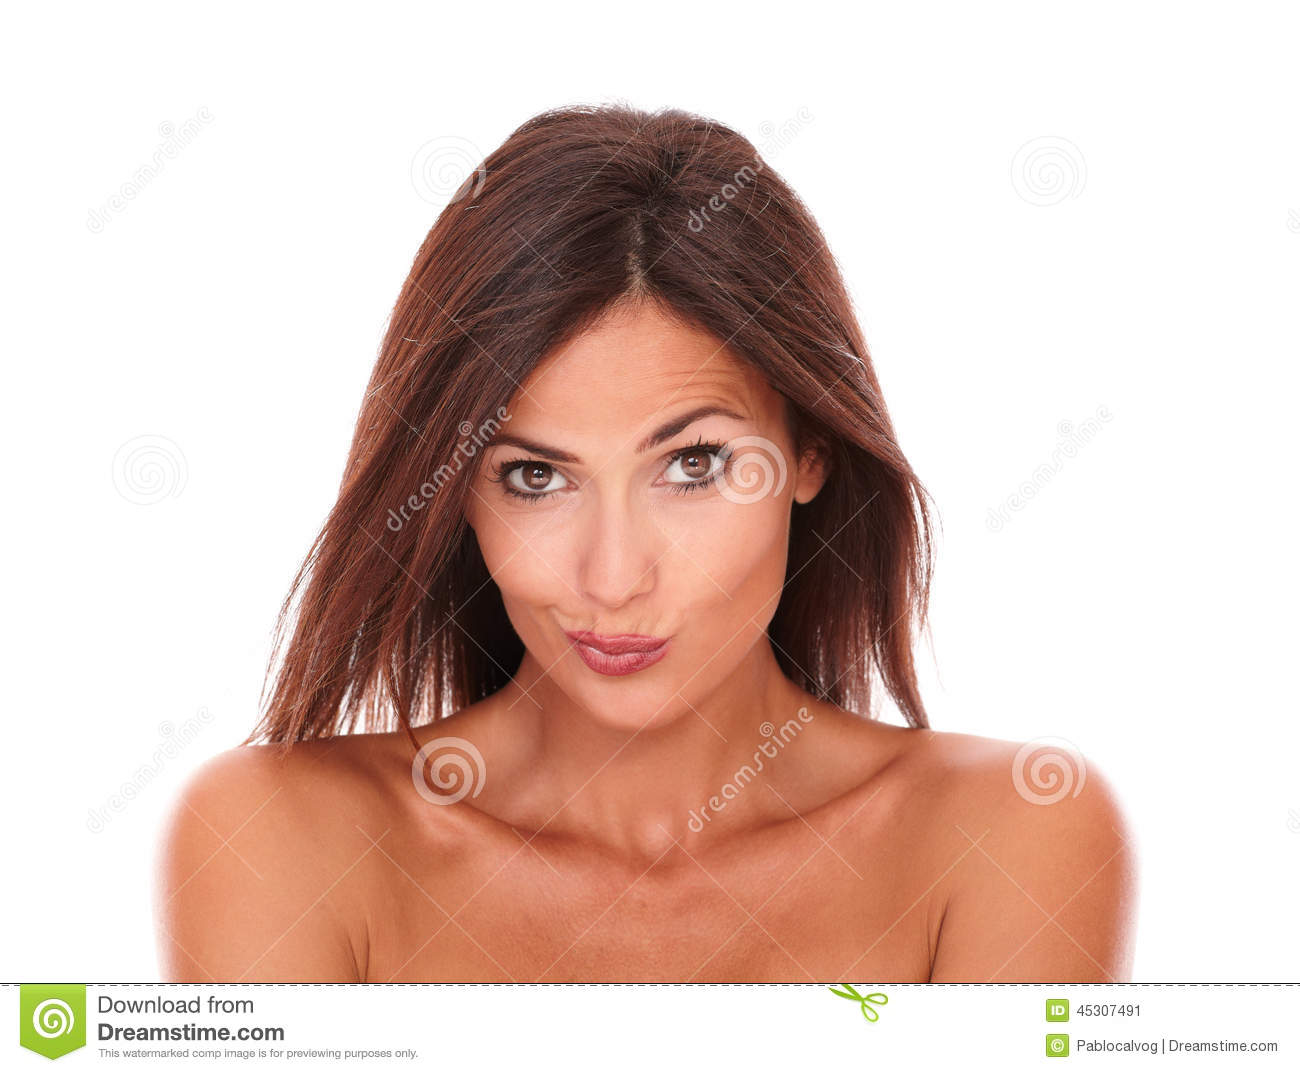 pretty adult female looking at camera stock image - image of adult